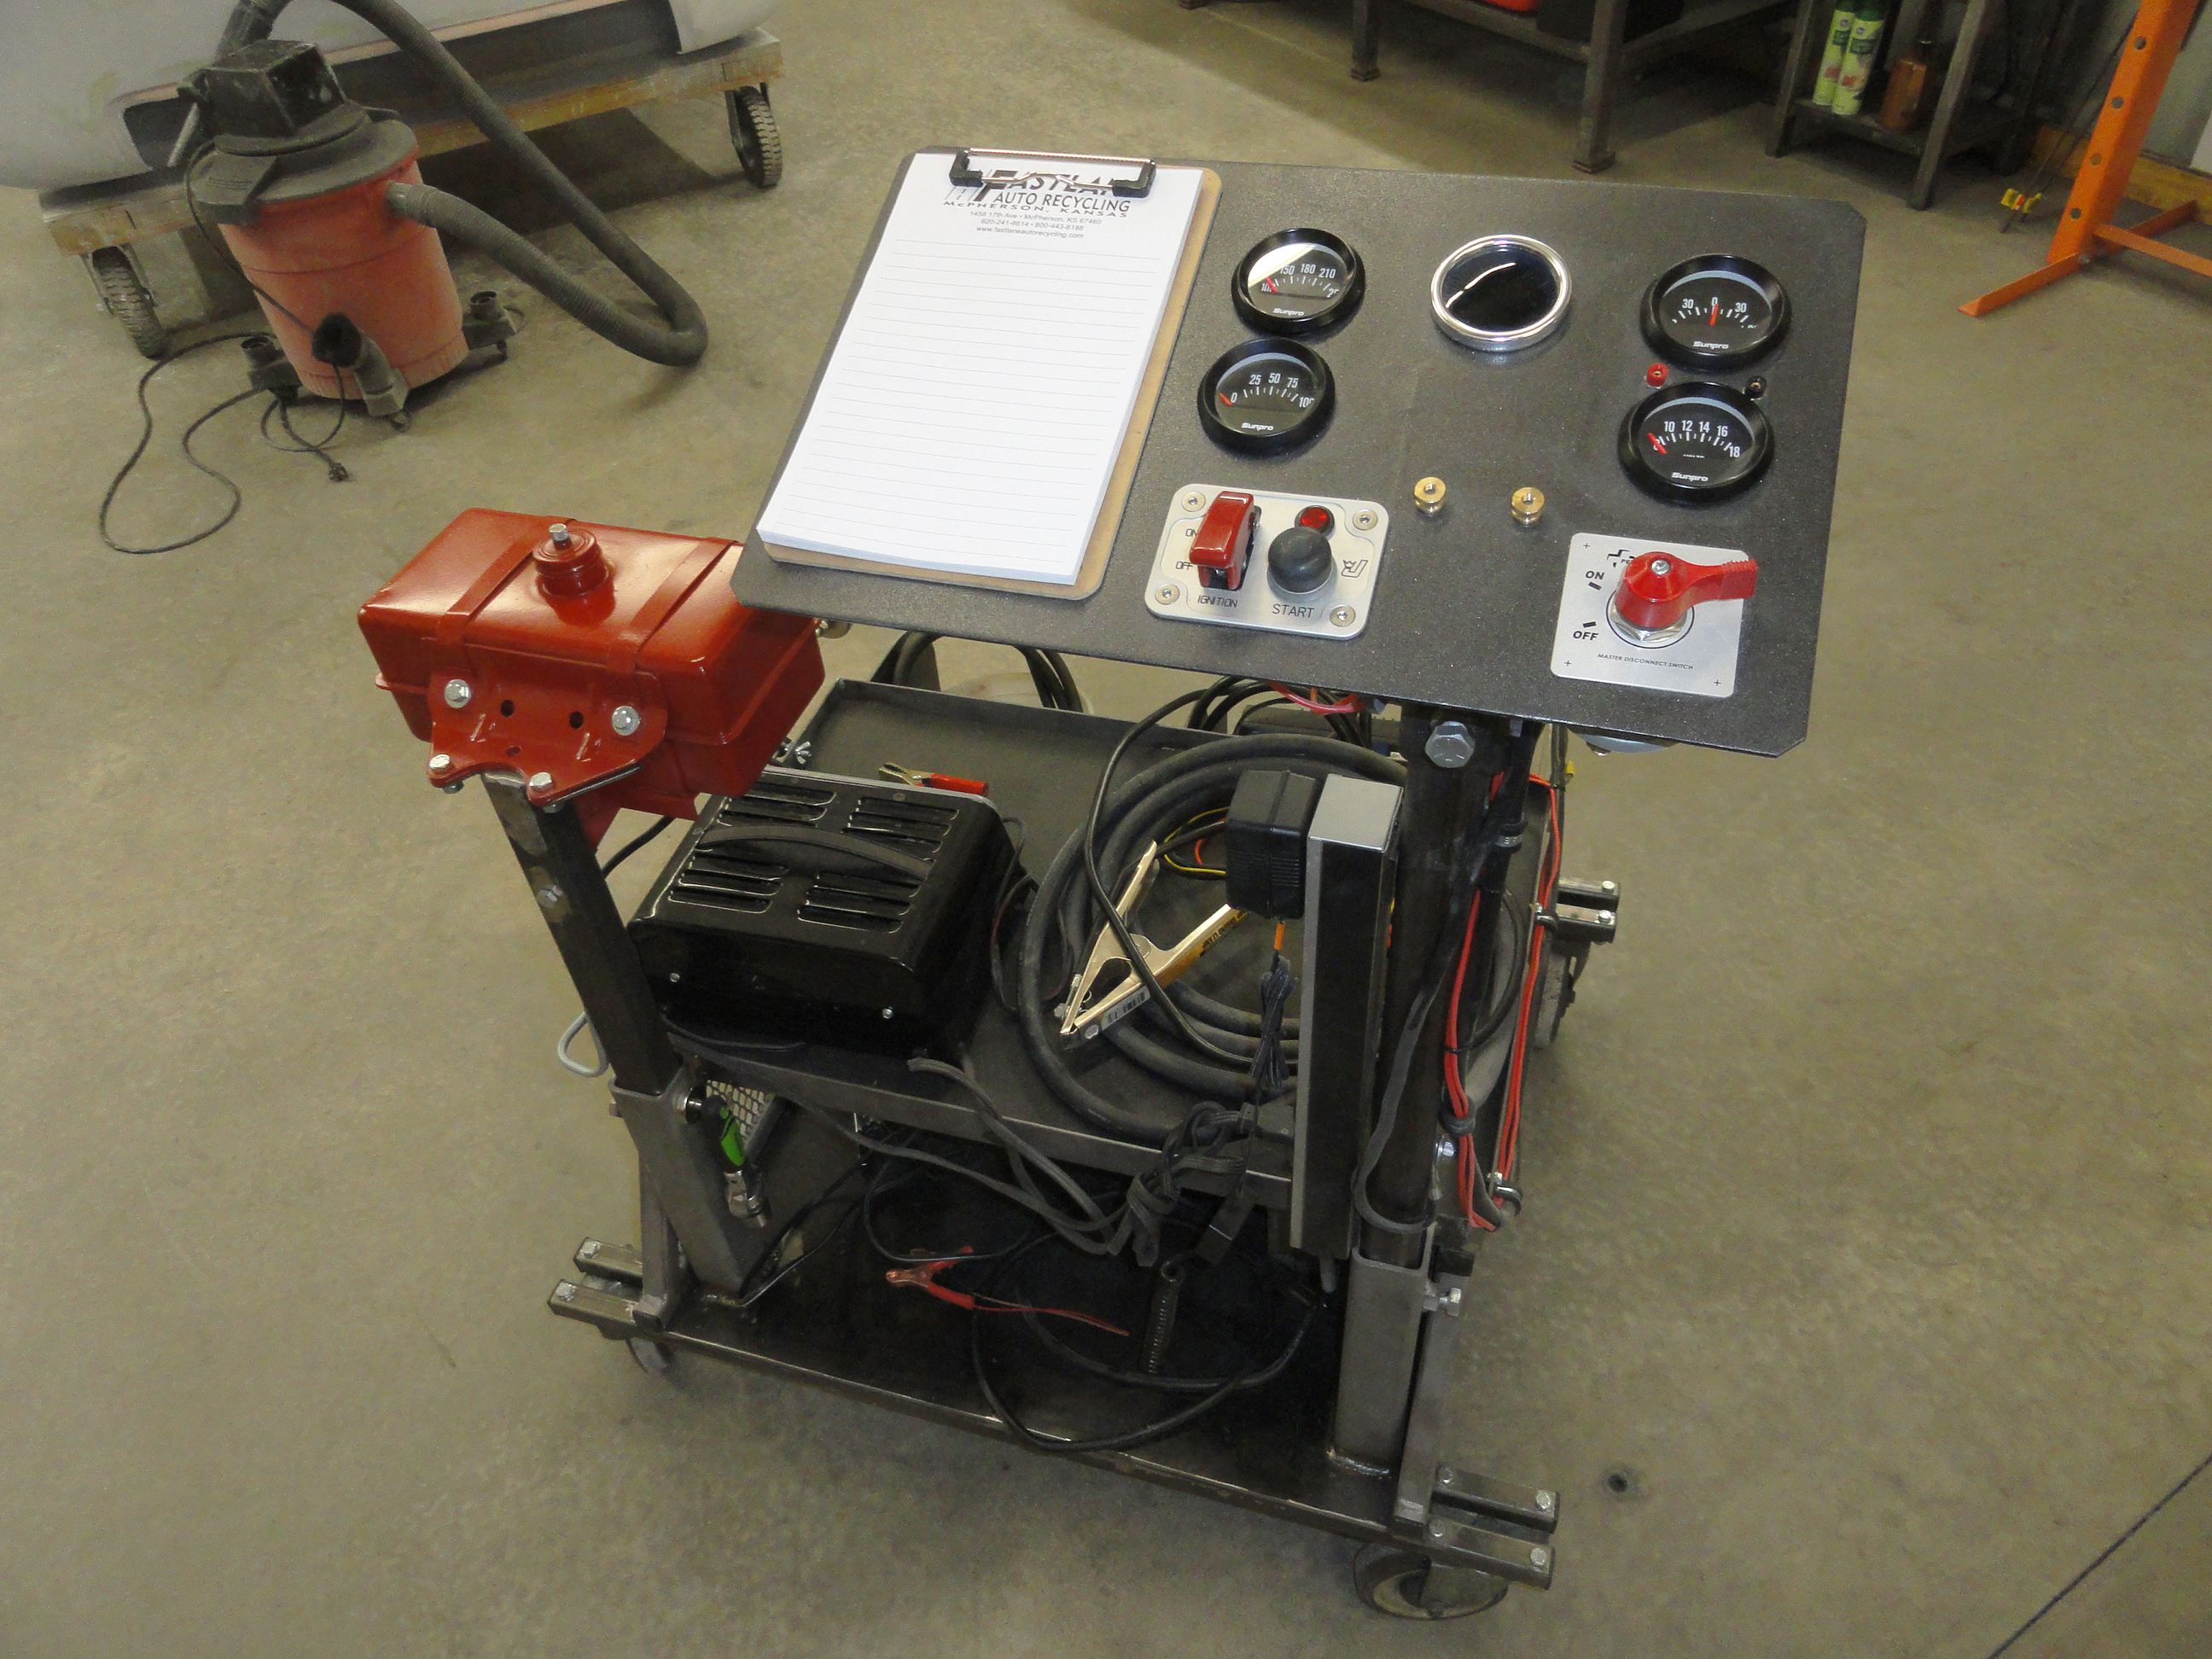 Most guys when they make an engine stand, incorporate all of the gauges,  switches, etc directly on the stand.